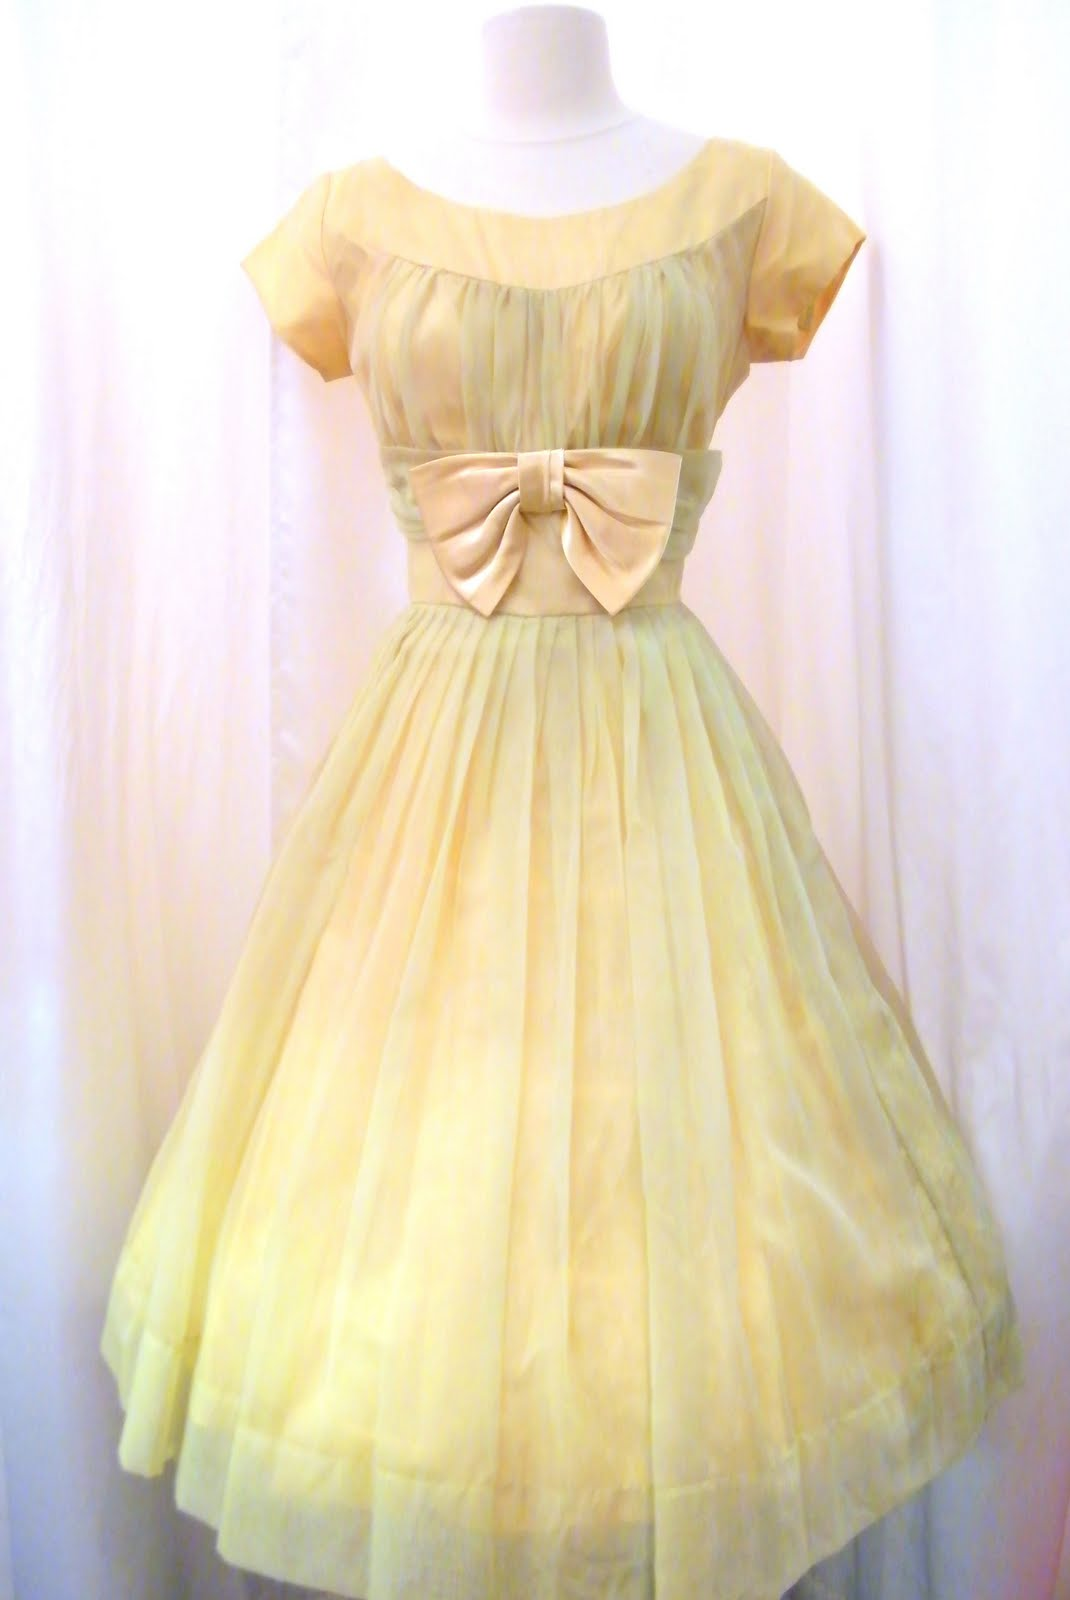 Dirty Fabulous Fabulous Vintage Dresses Just Arrived From